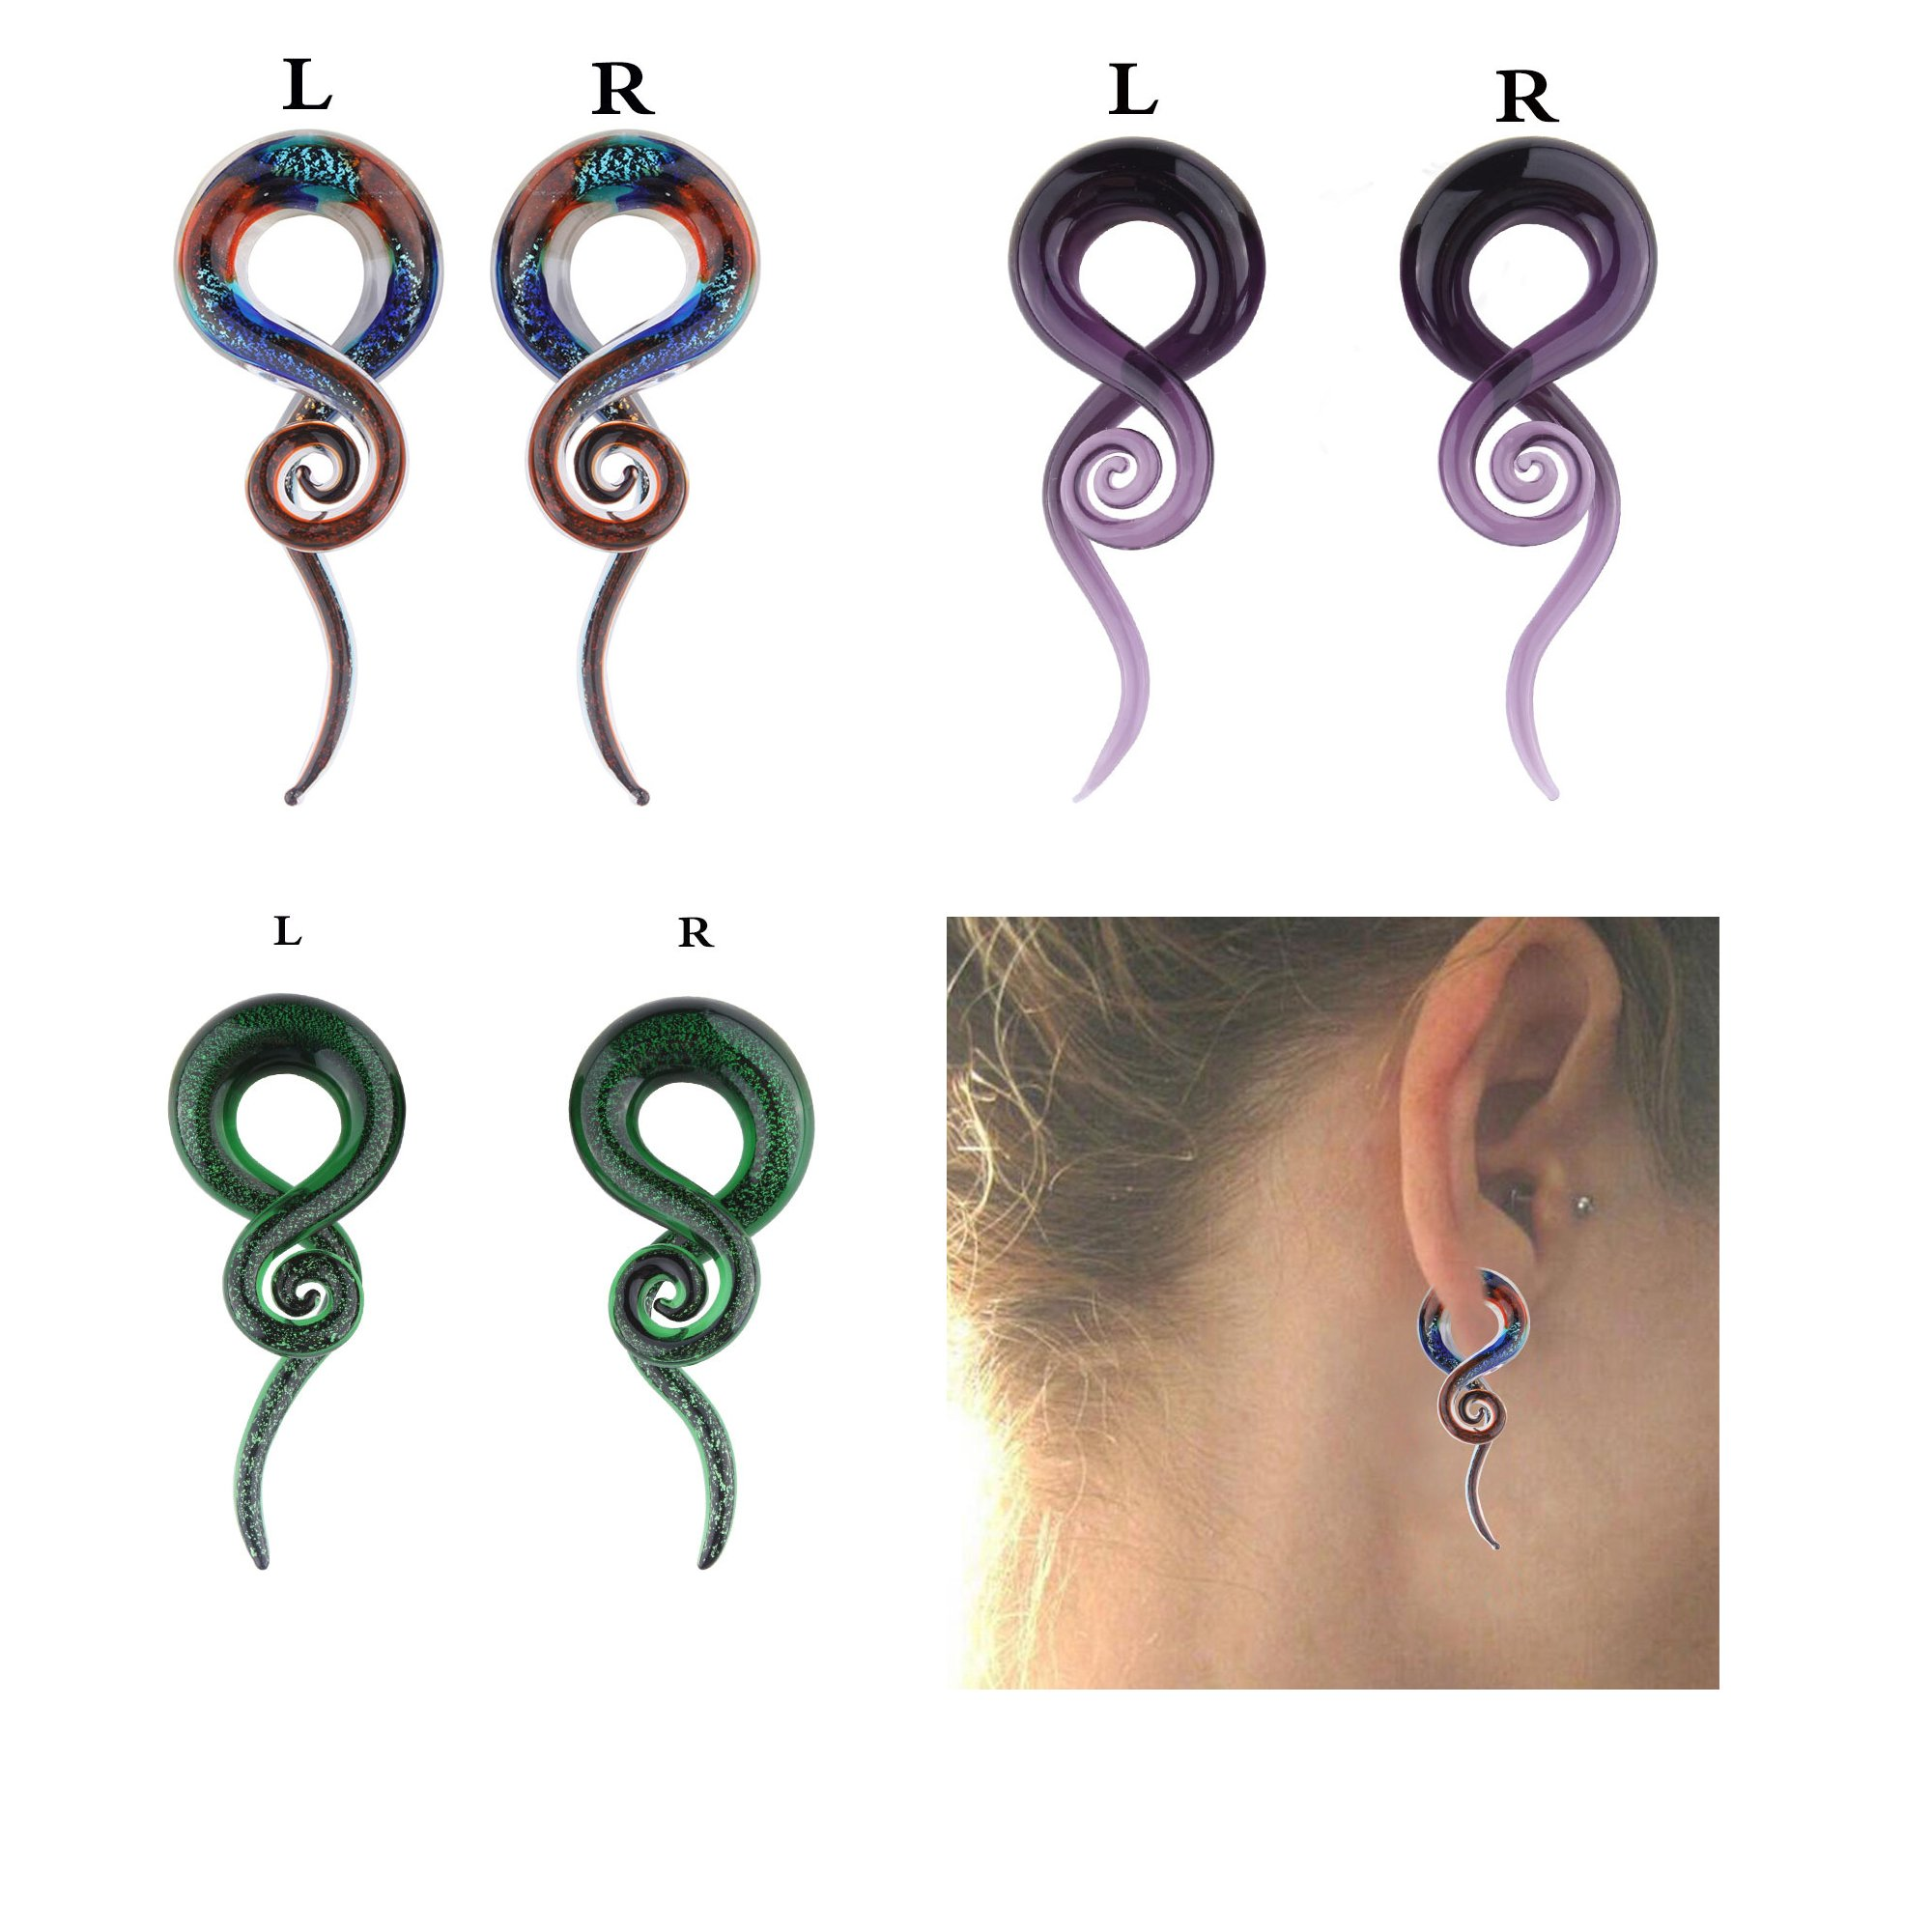 3 Pairs Glass Ear Spiral Taper Plugs Ear Expander Ear Piercing Tunnel Plugs Gauges (6mm=2G)